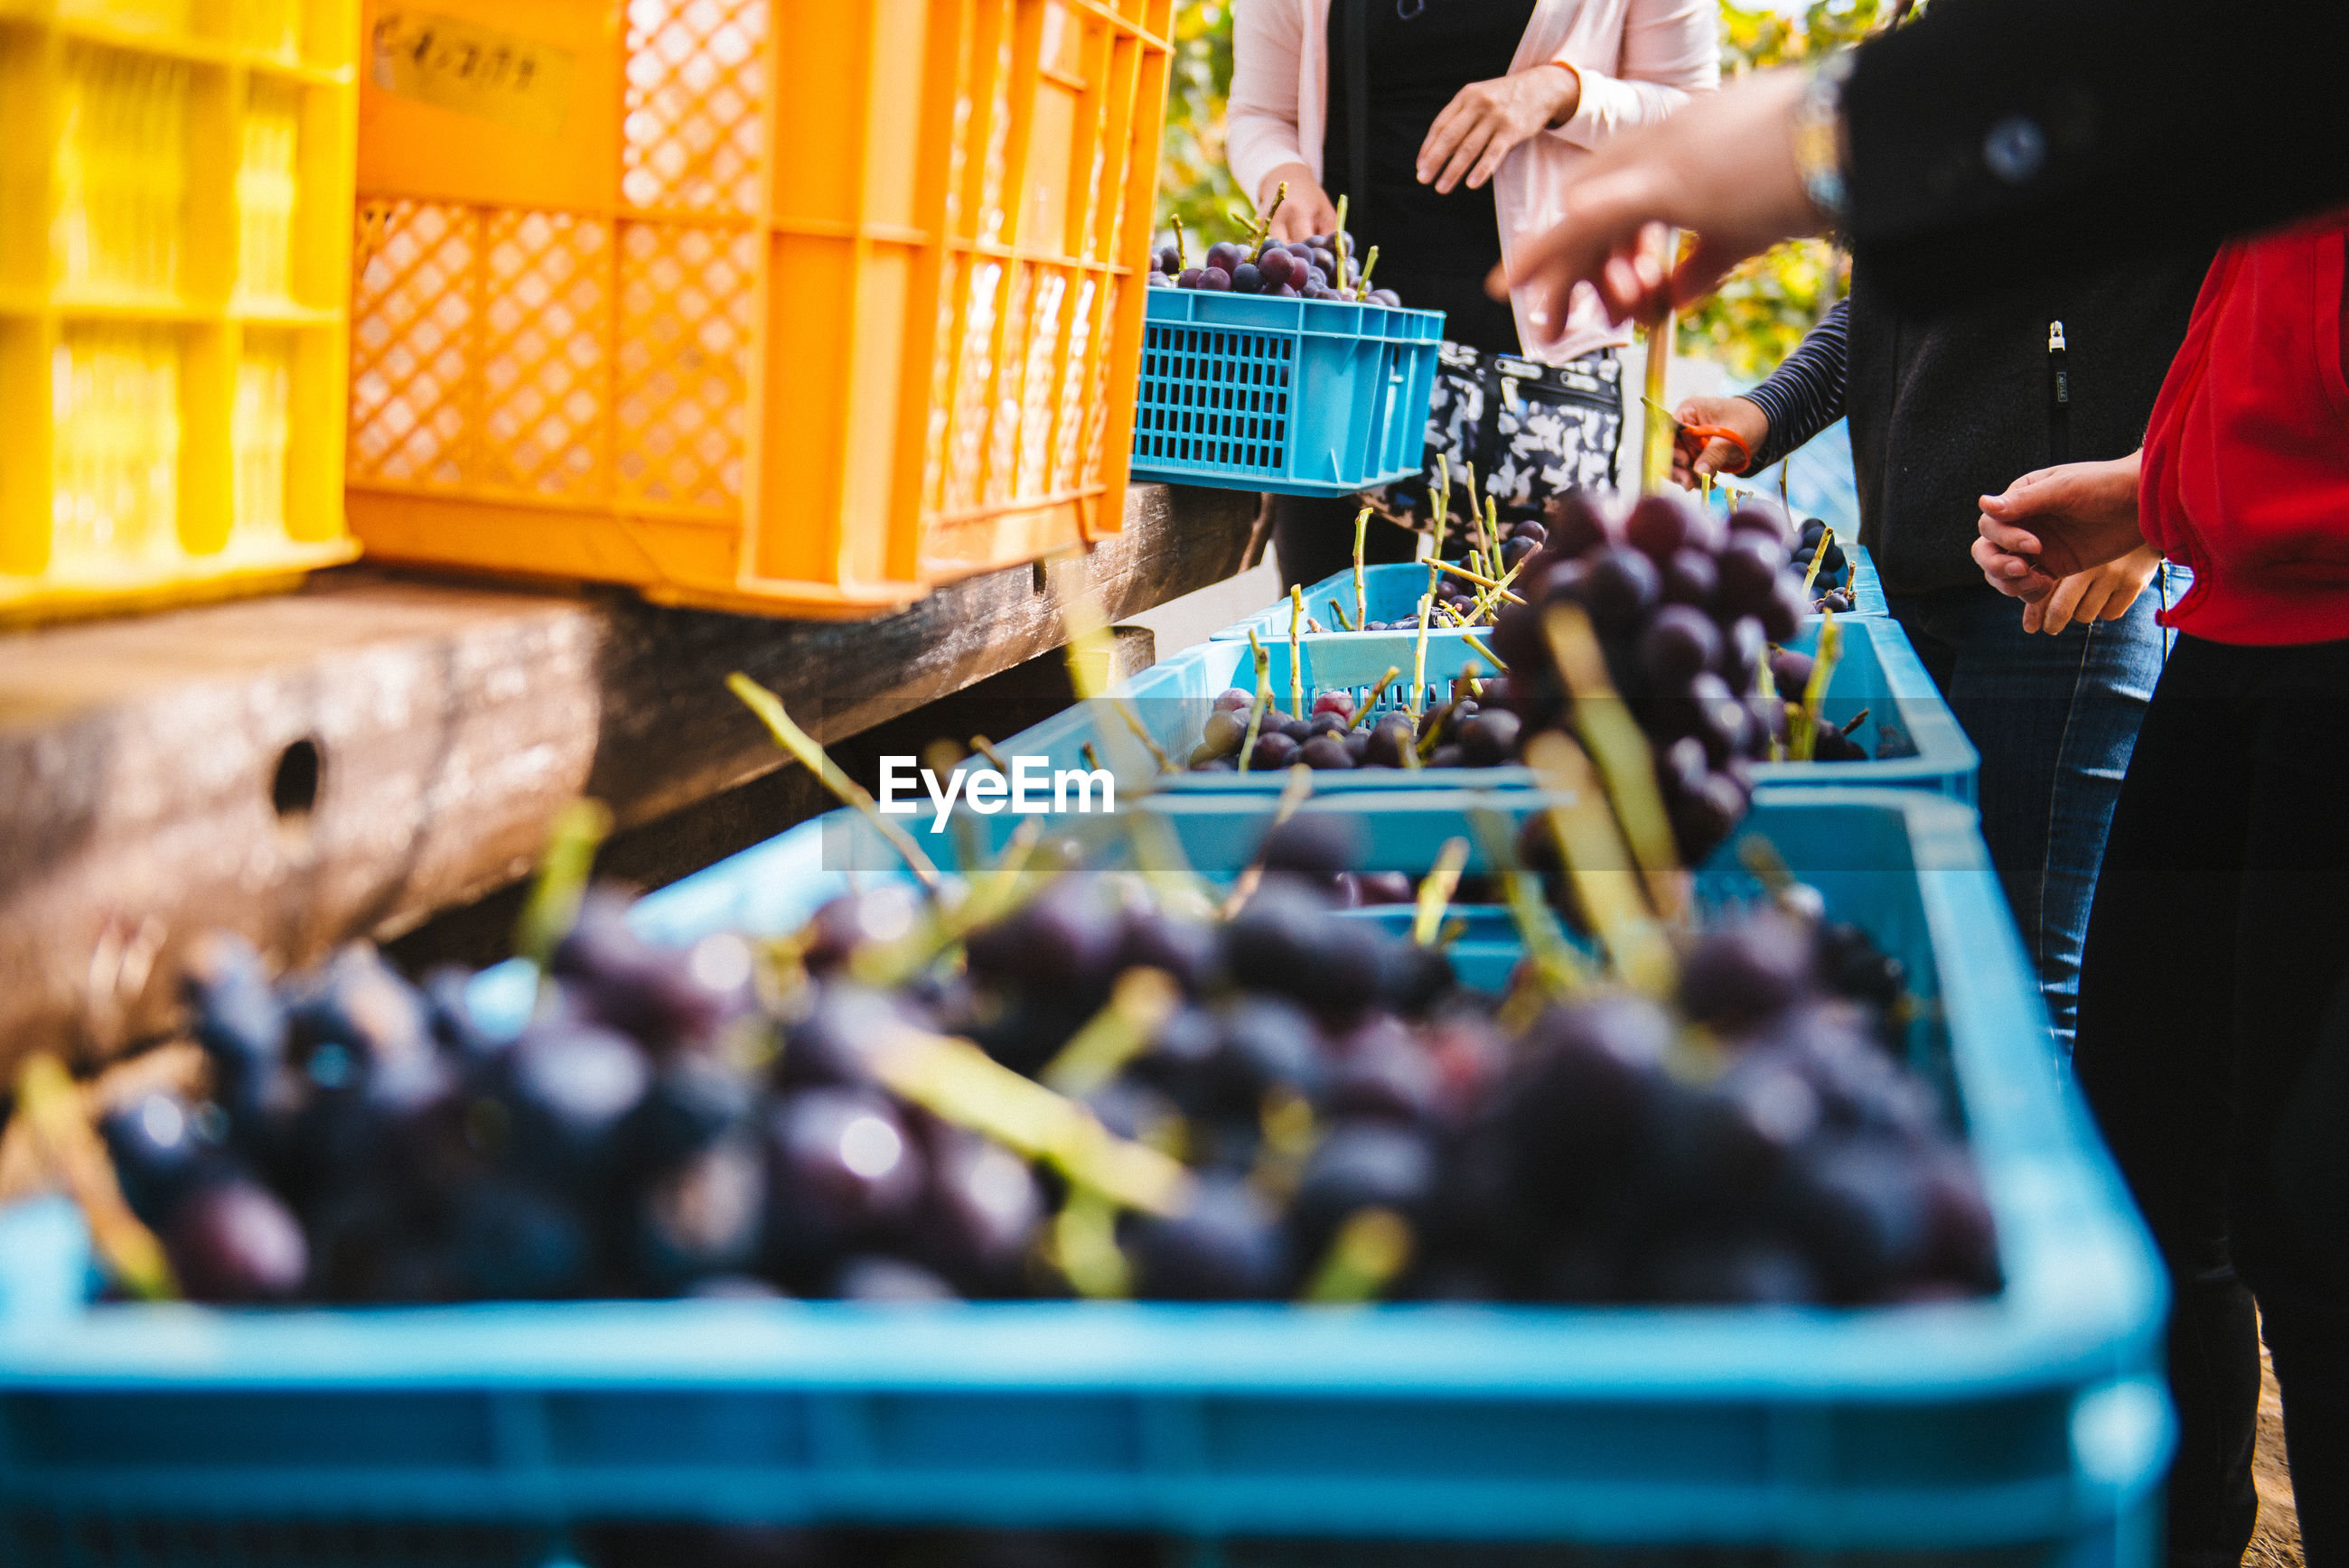 Midsection of people standing by crates with grapes